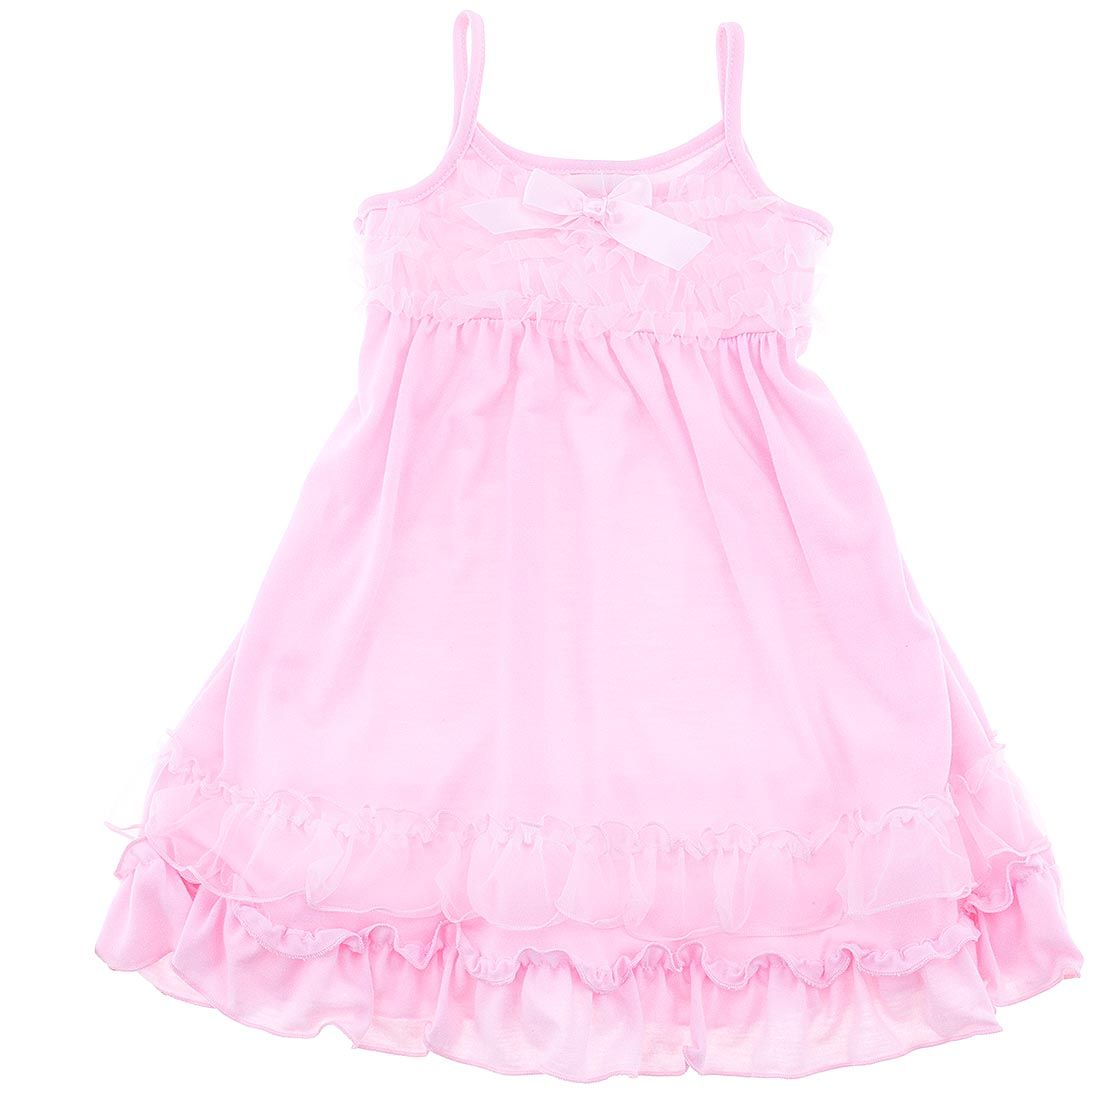 Laura Dare Little Girls Yellow Pink Floral Print Ruffle Trim Nightgown 2T-6X